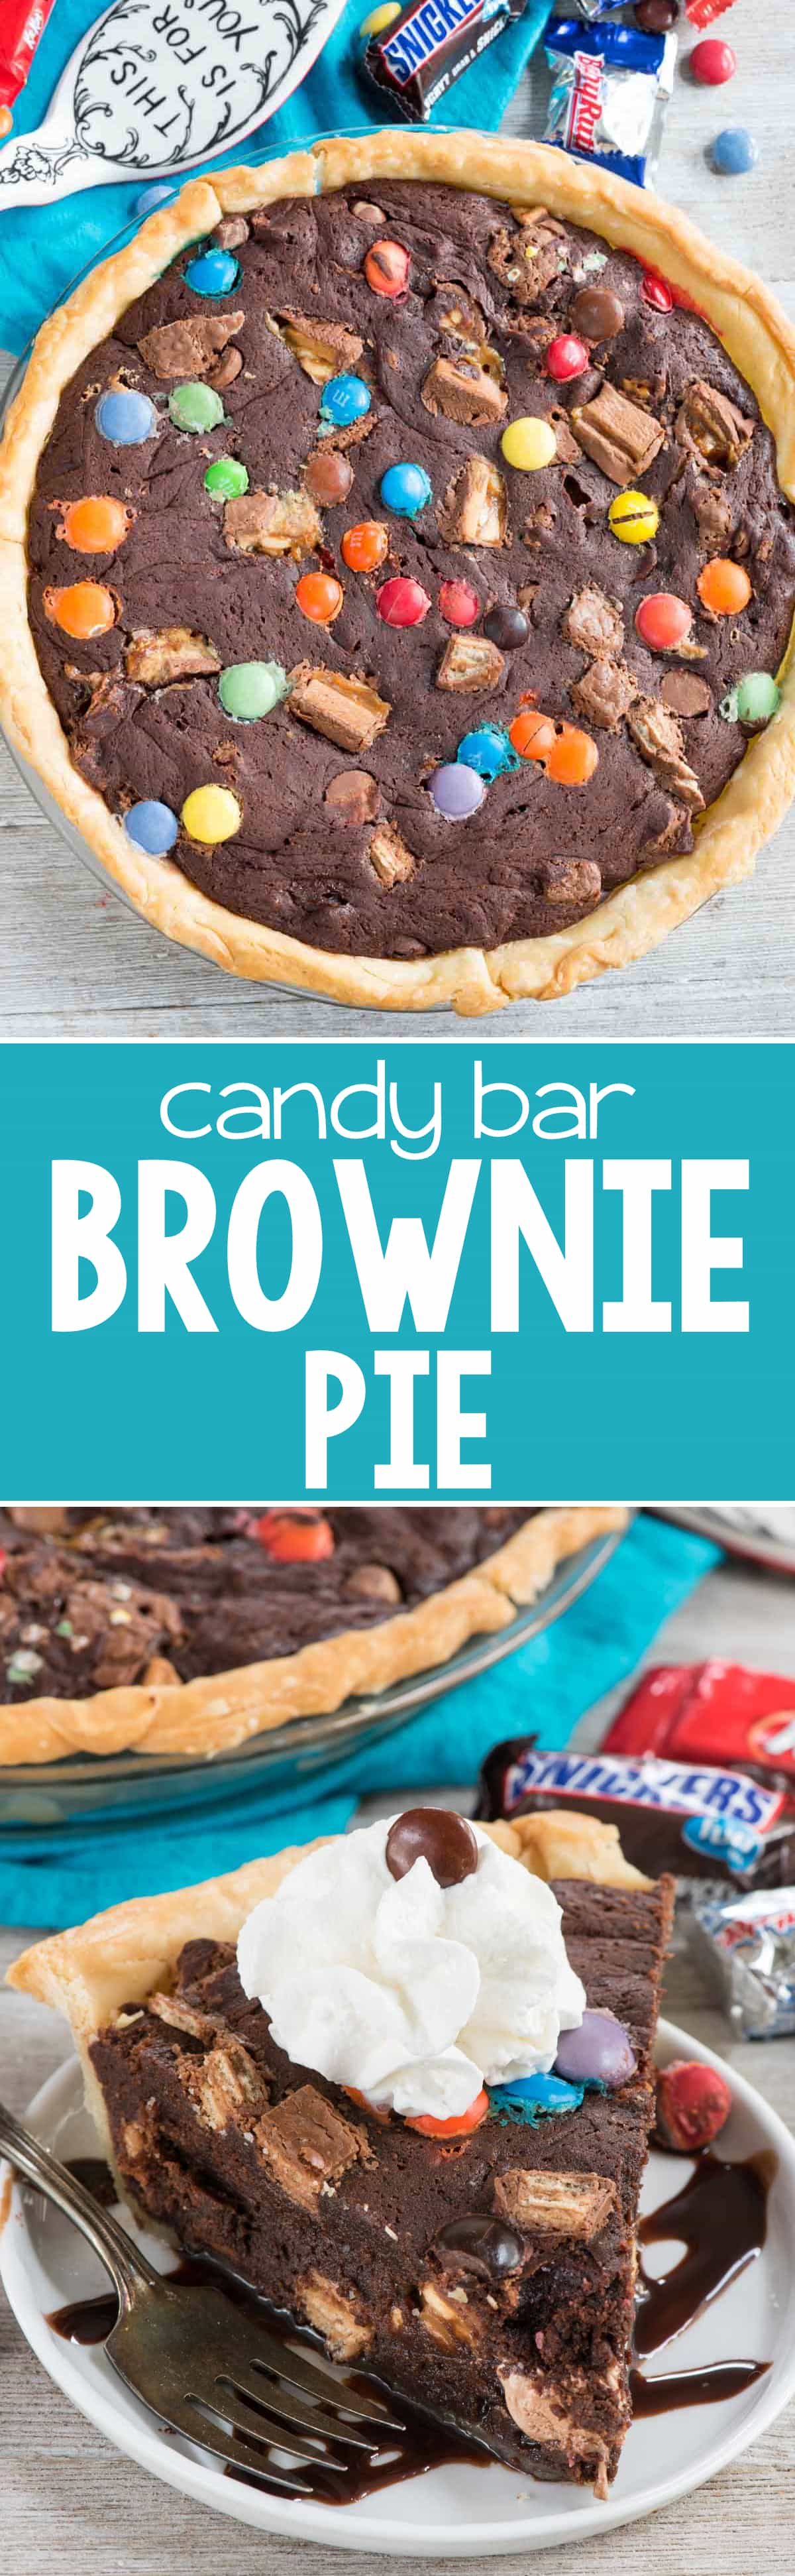 Candy Bar Brownie Pie - this easy brownie pie recipe uses my favorite brownie recipe and is FULL of candy! Clean out your pantry and use all the candy to make this pie!